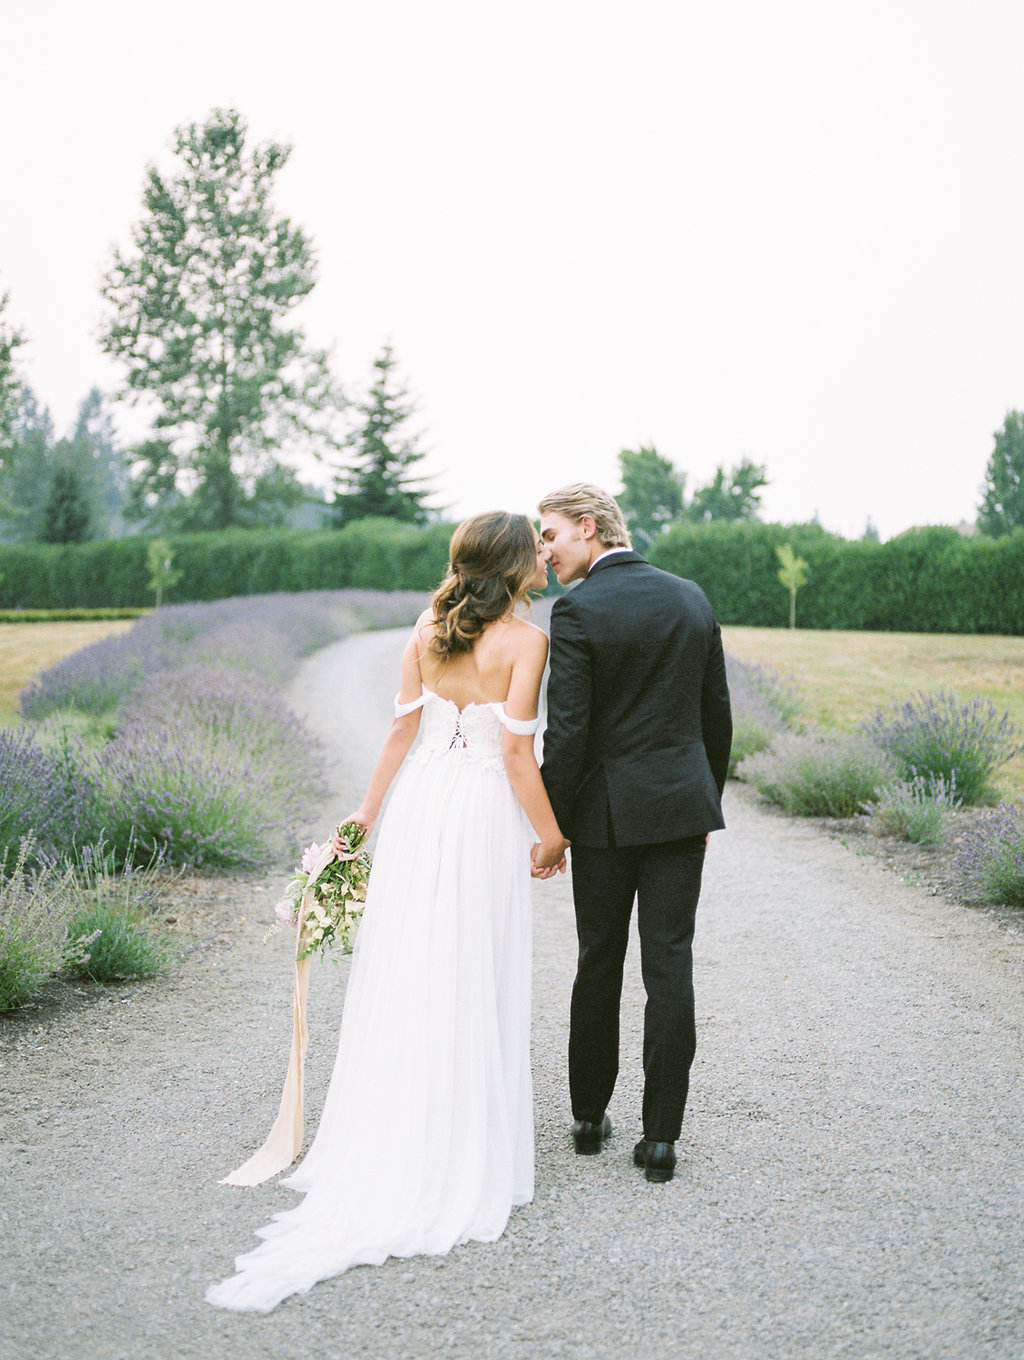 LuxProvenceWeddingInspired-SavanMentorshipbyJonandMochPhotography(68of75).jpg